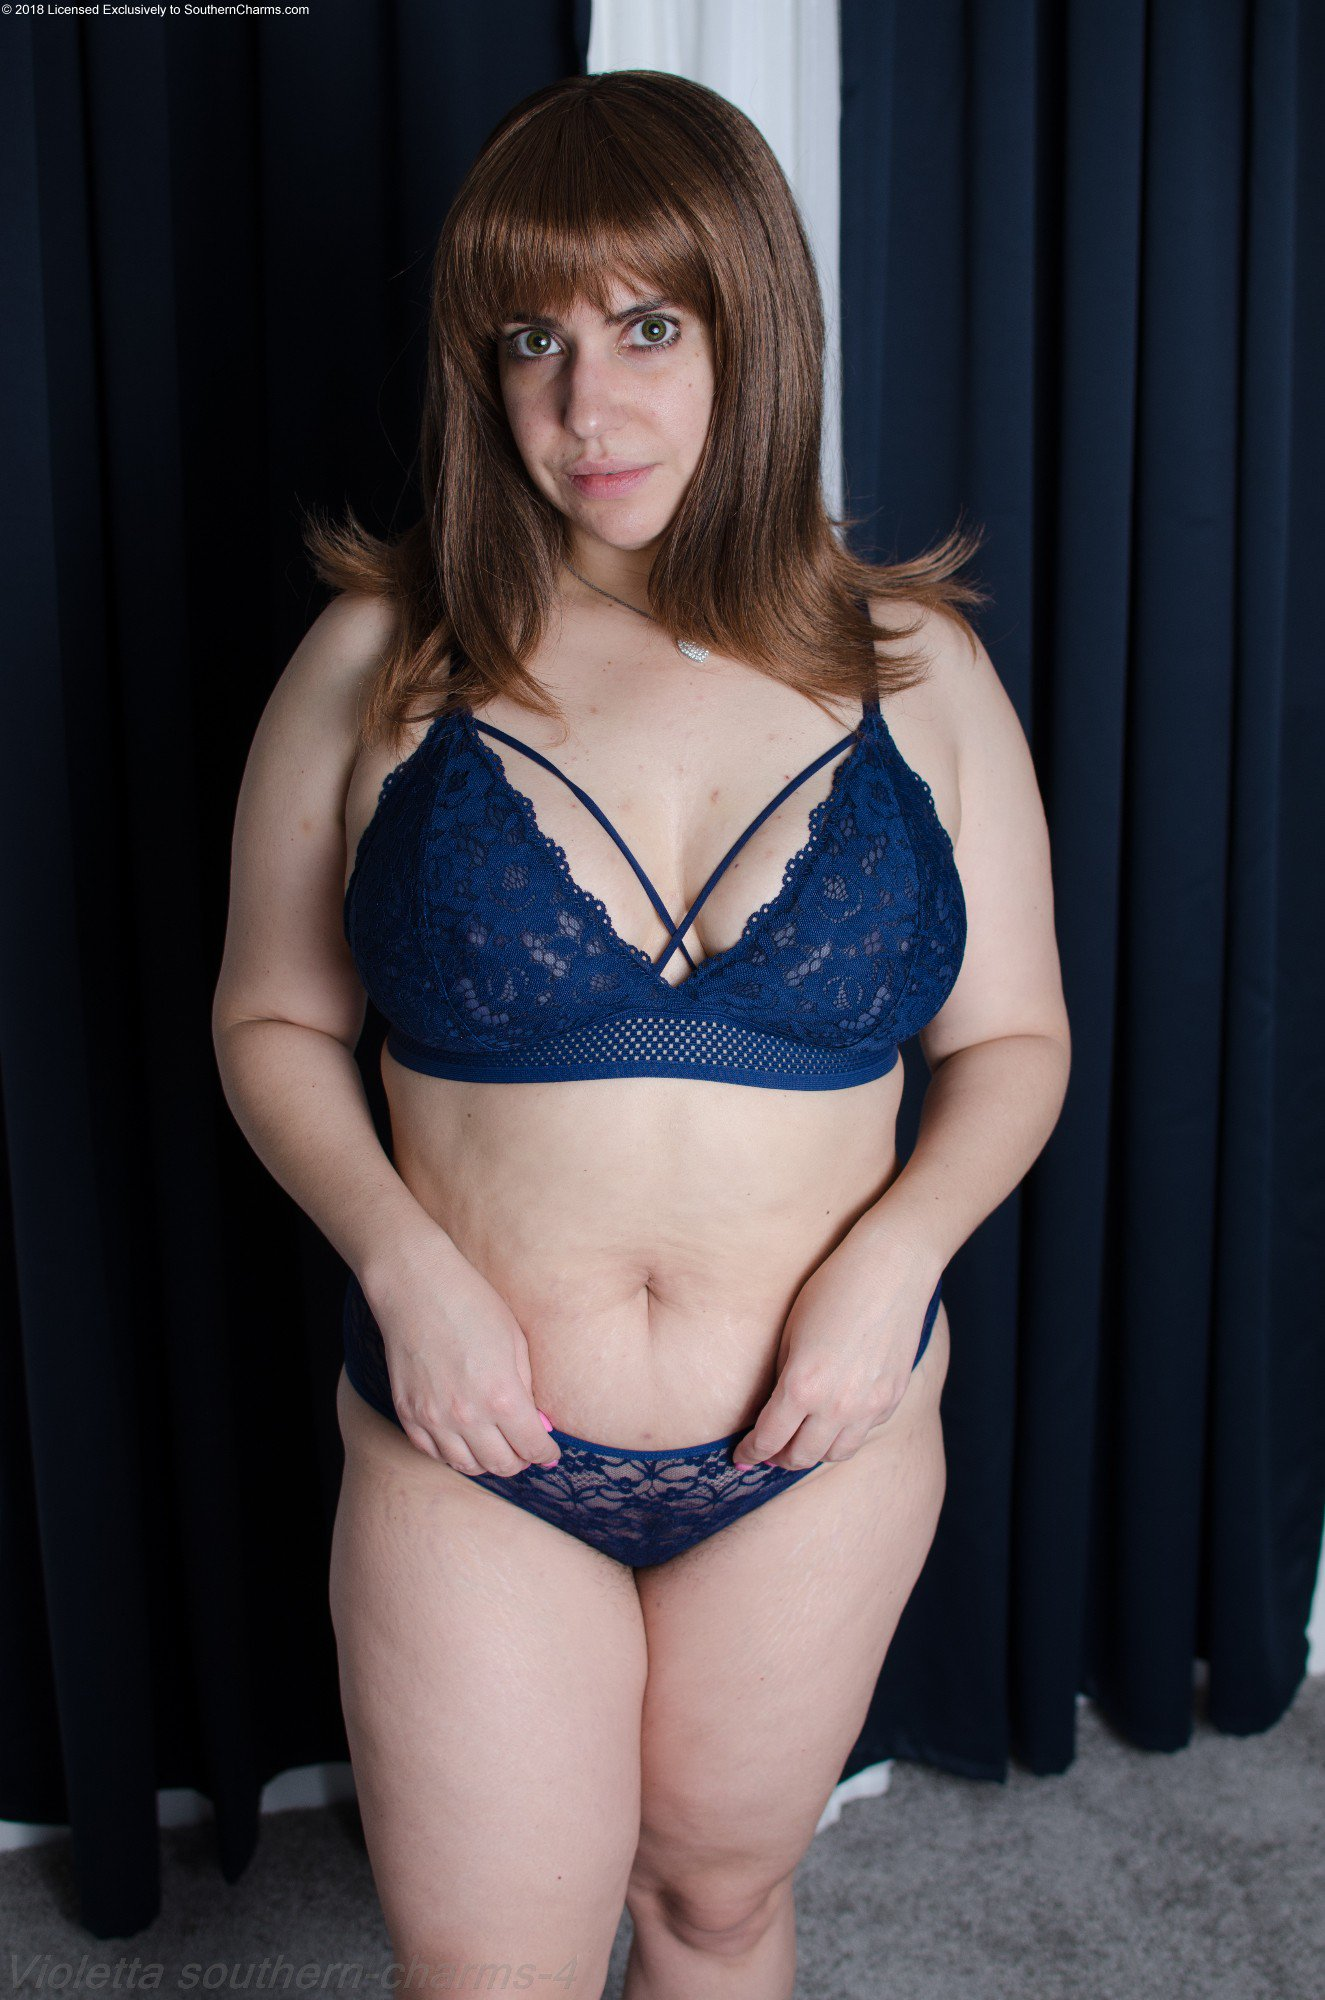 Southerncharms